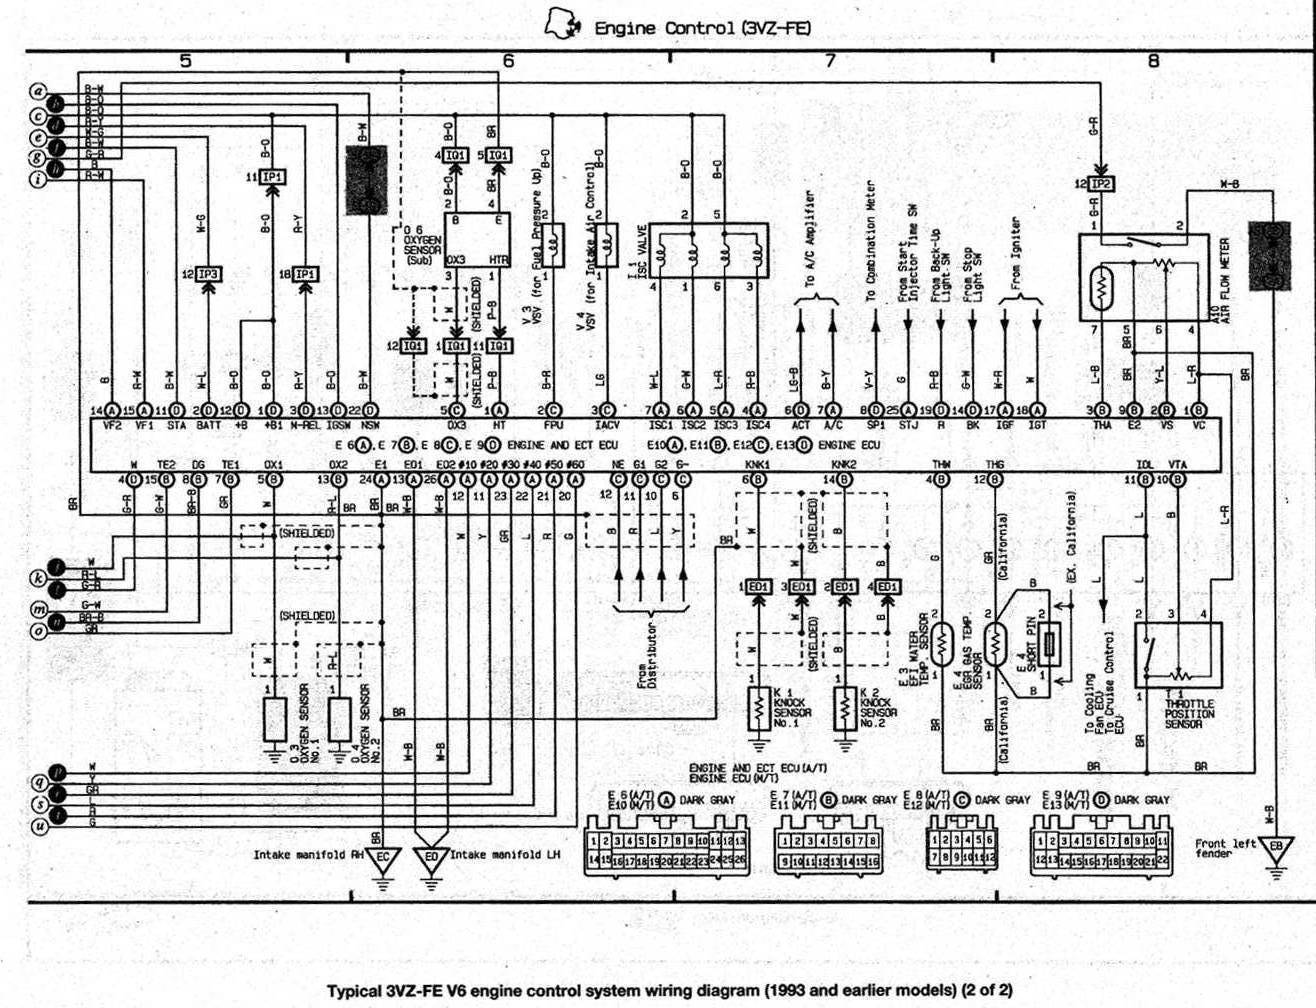 2002 mr2 wiring diagram